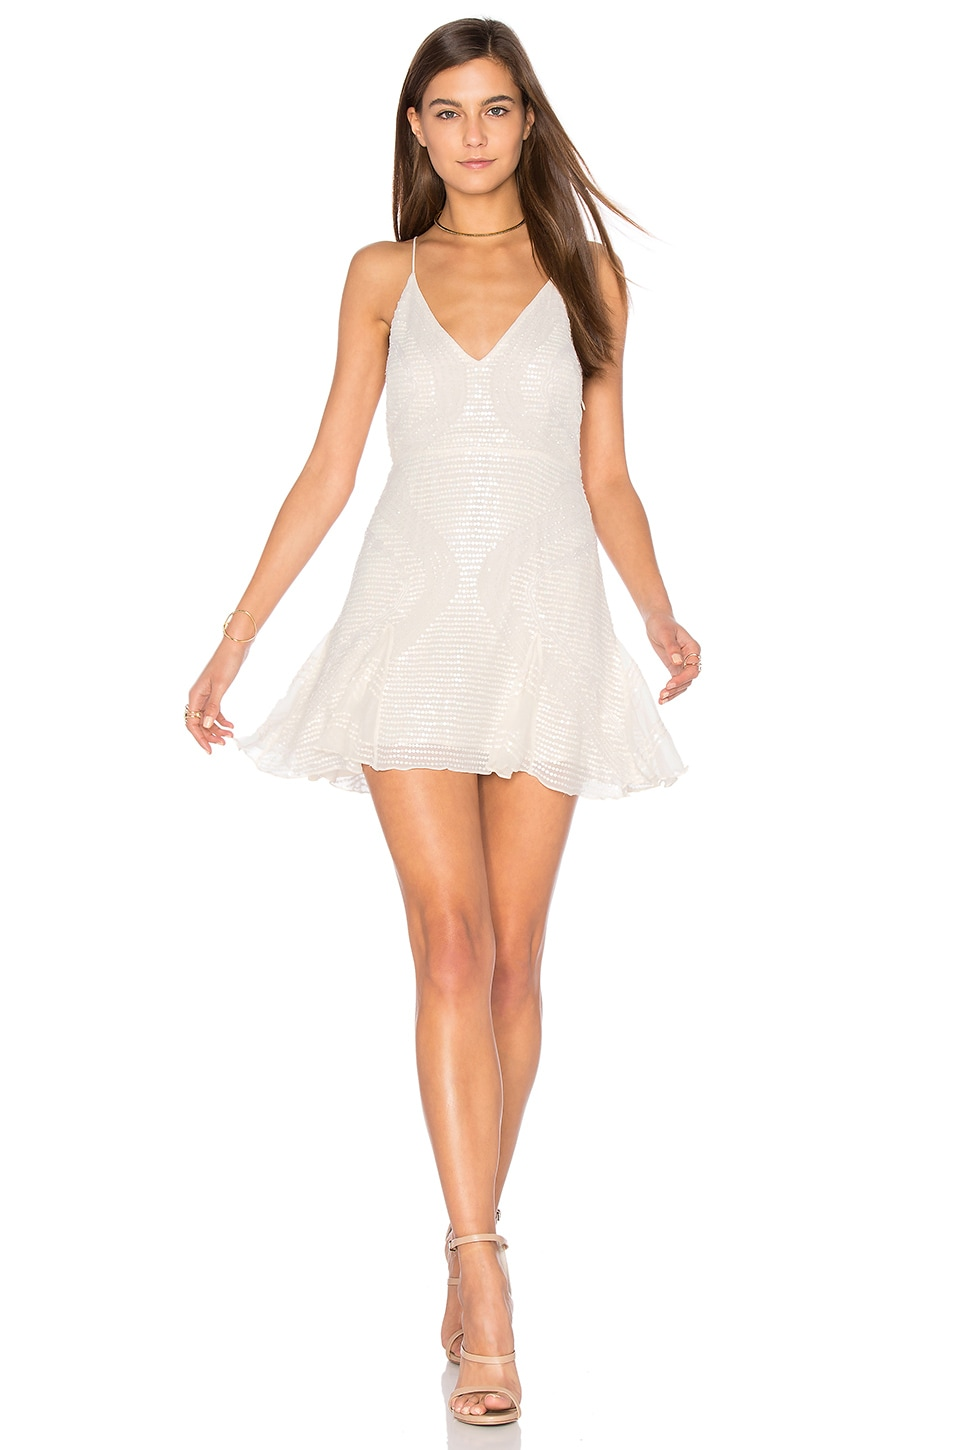 Free People Sparklette Mini Dress in Ivory